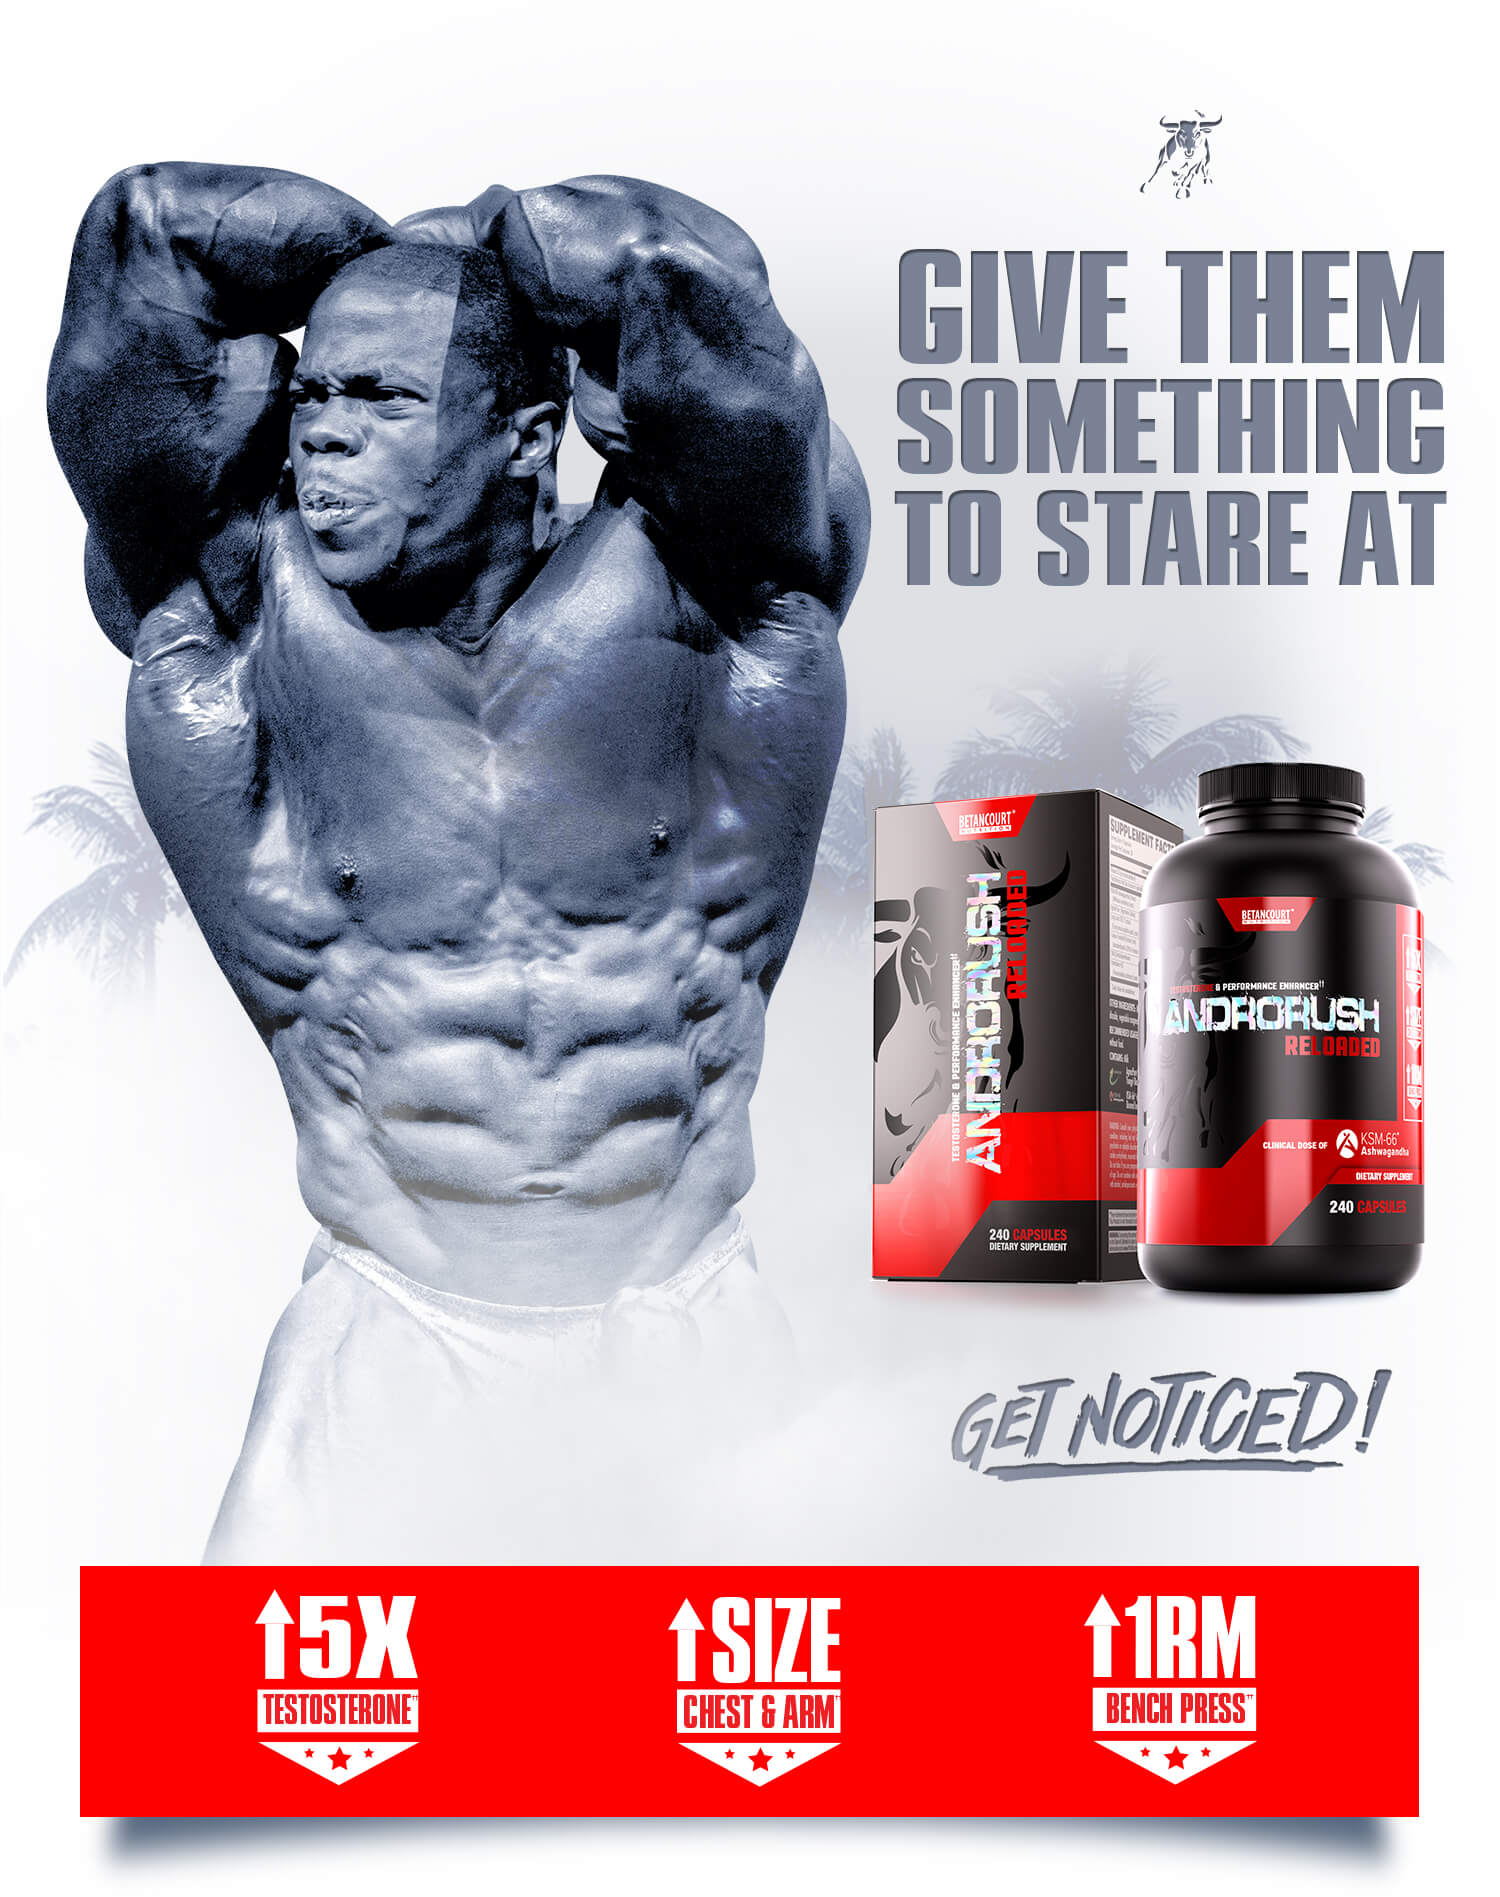 Androrush Caps - Betancourt Nutrition - Testosterone and Performance Enhancer